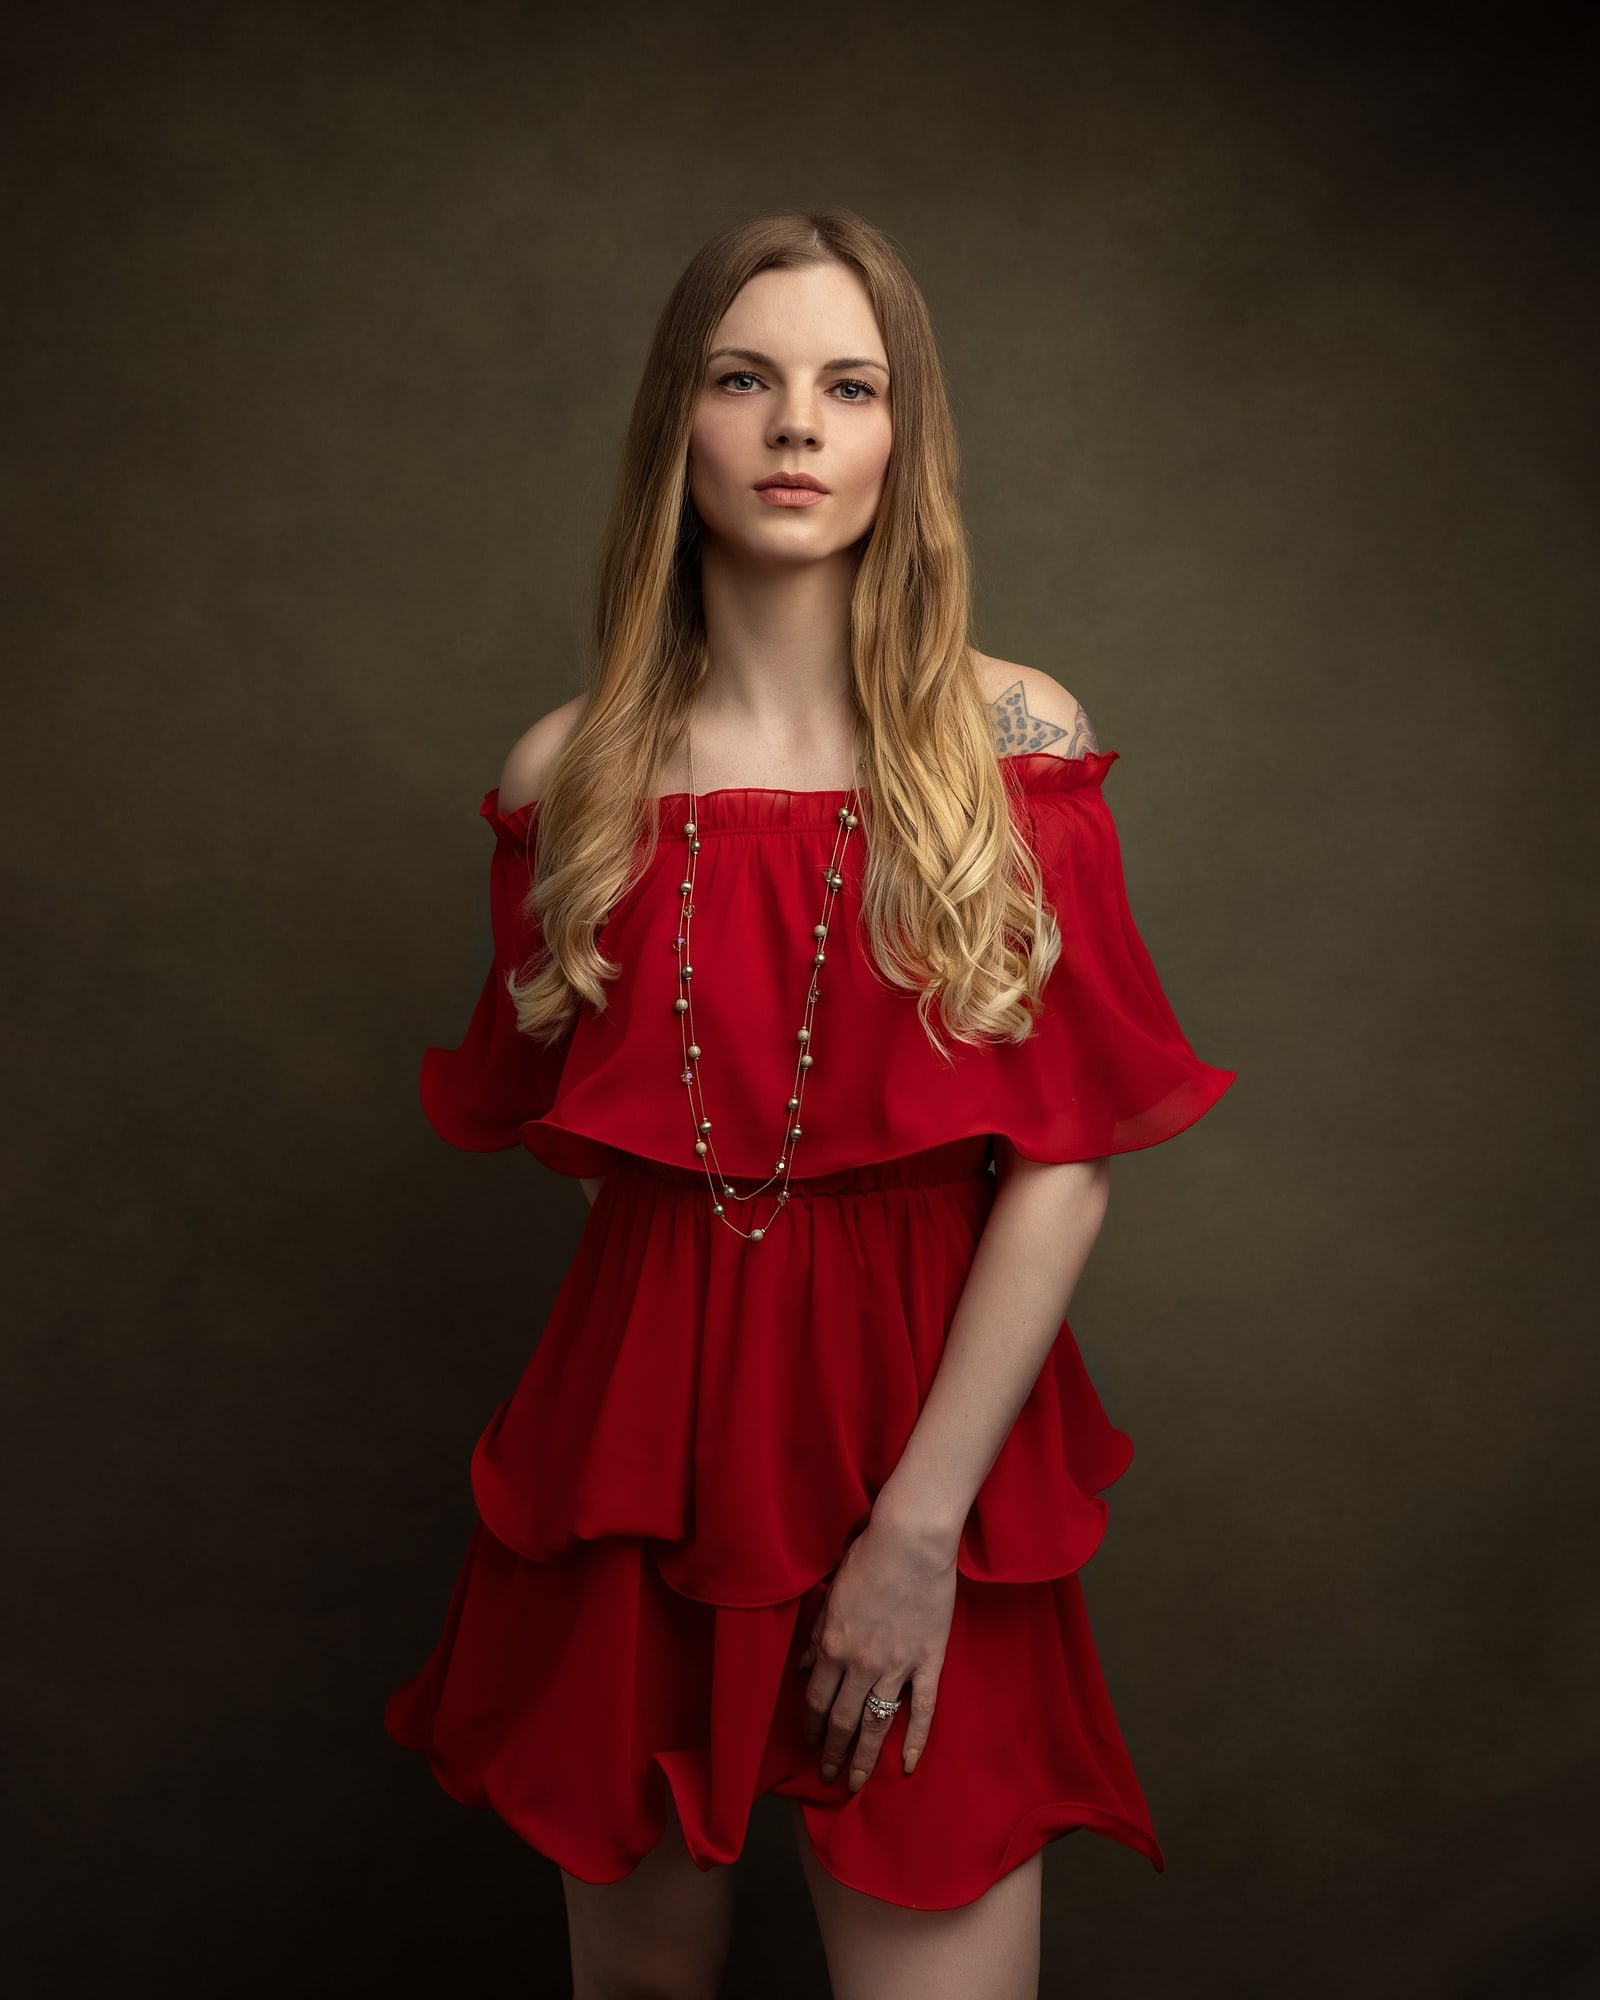 Beautiful woman in a red dress and gold necklace poses for a beauty shoot on a green background in Suffolk studio